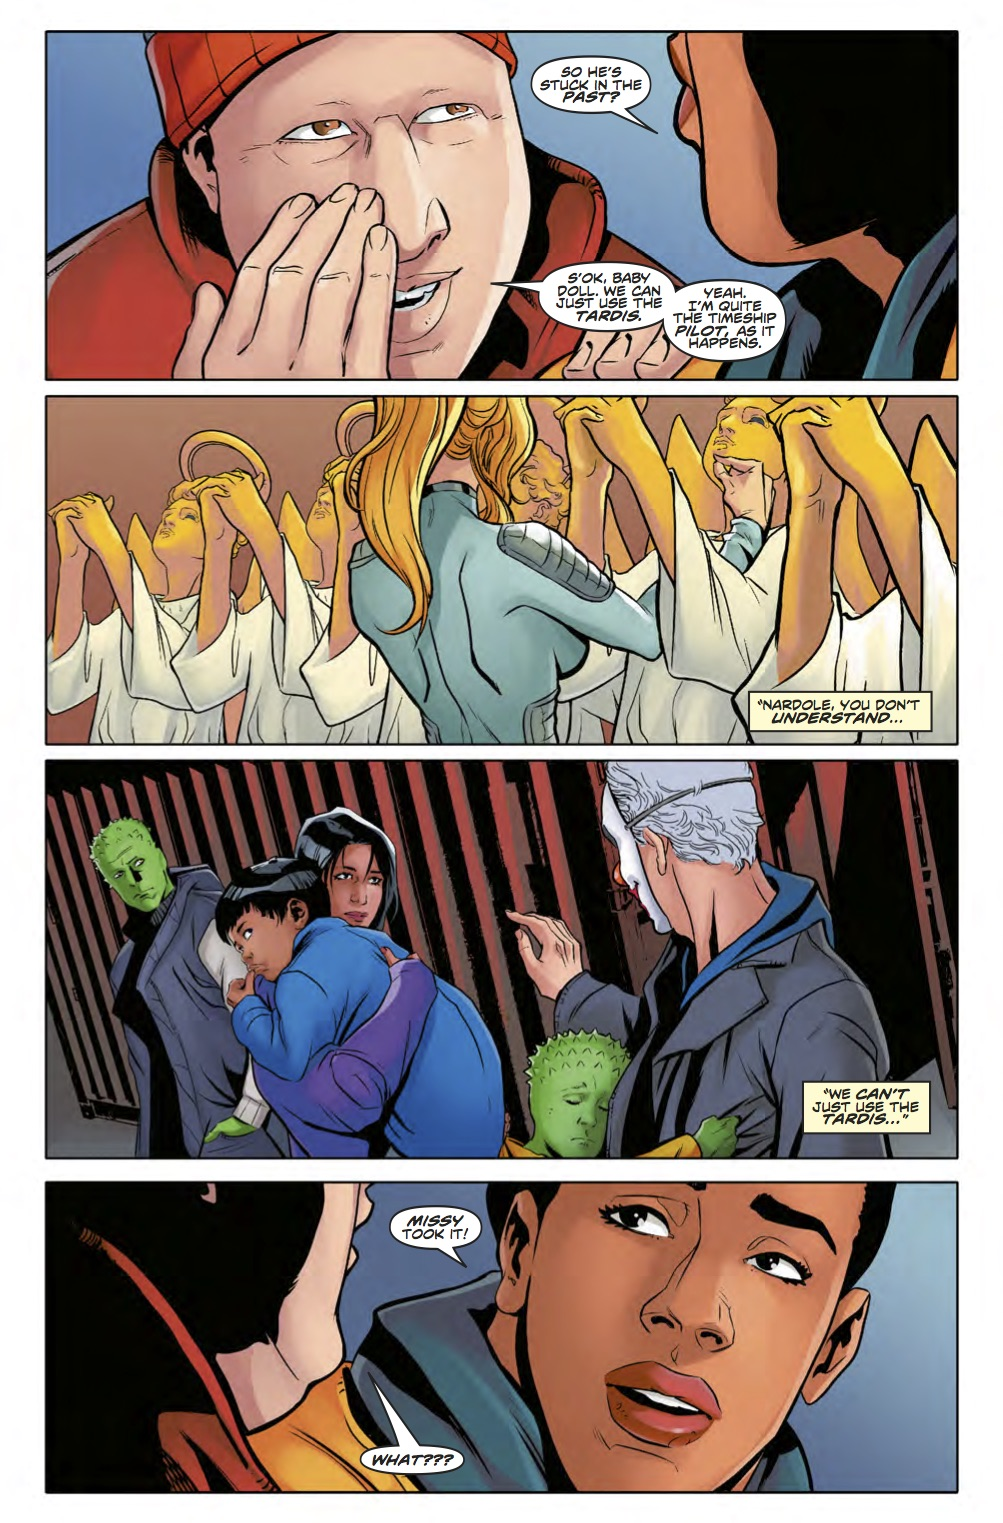 Doctor Who: Twelfth Doctor - Year Three #12 - Page 3 (Credit: Titan )